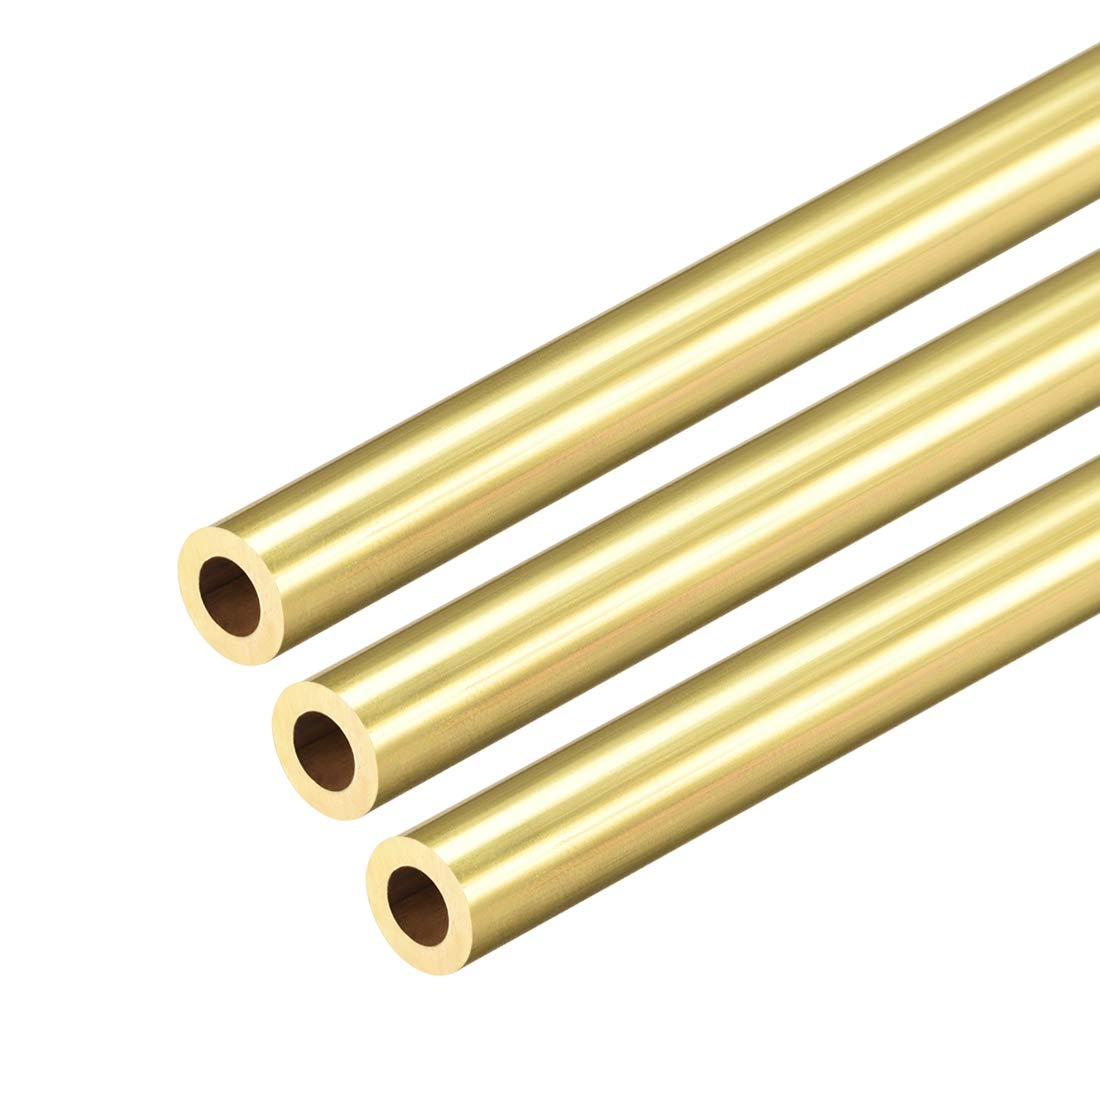 uxcell Brass Round Tube 300mm Length 7mm OD 1.5mm Wall Thickness Seamless Straight Pipe Tubing 3 Pcs